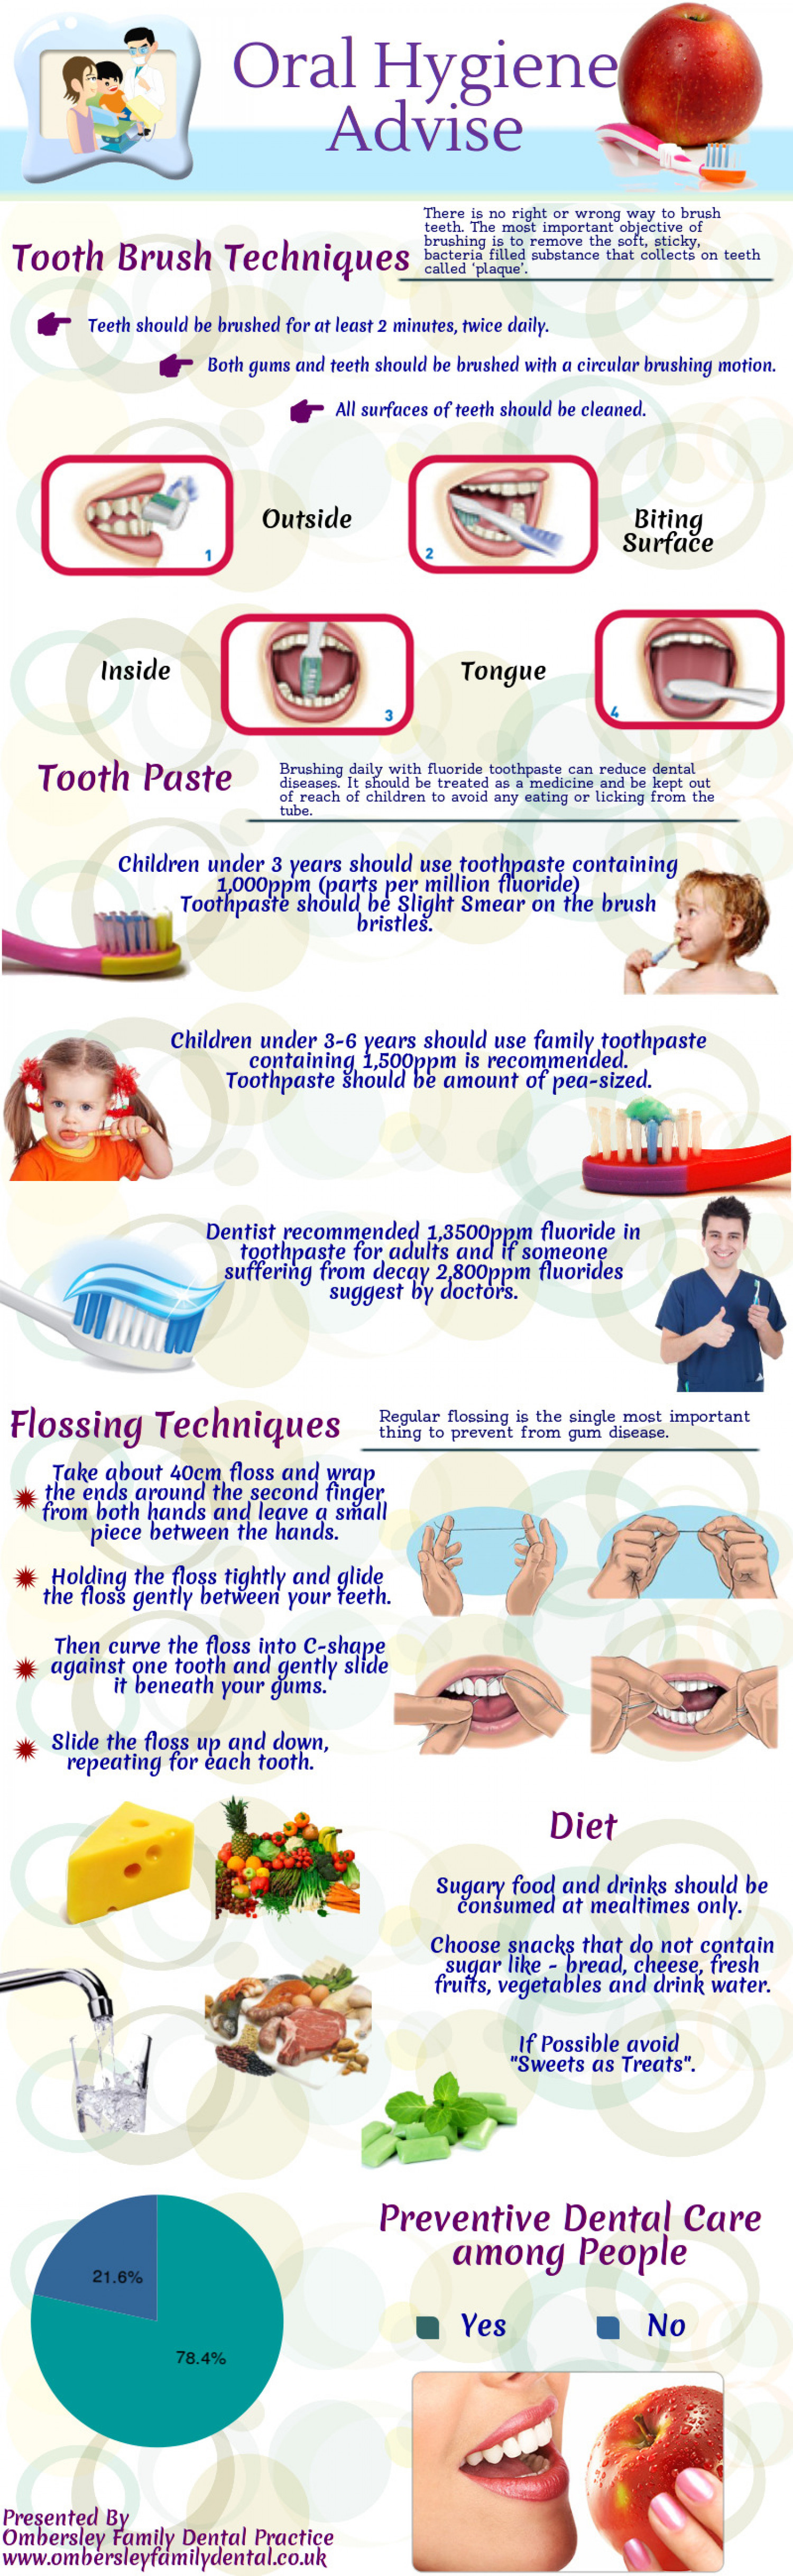 Oral Hygiene Advice Infographic